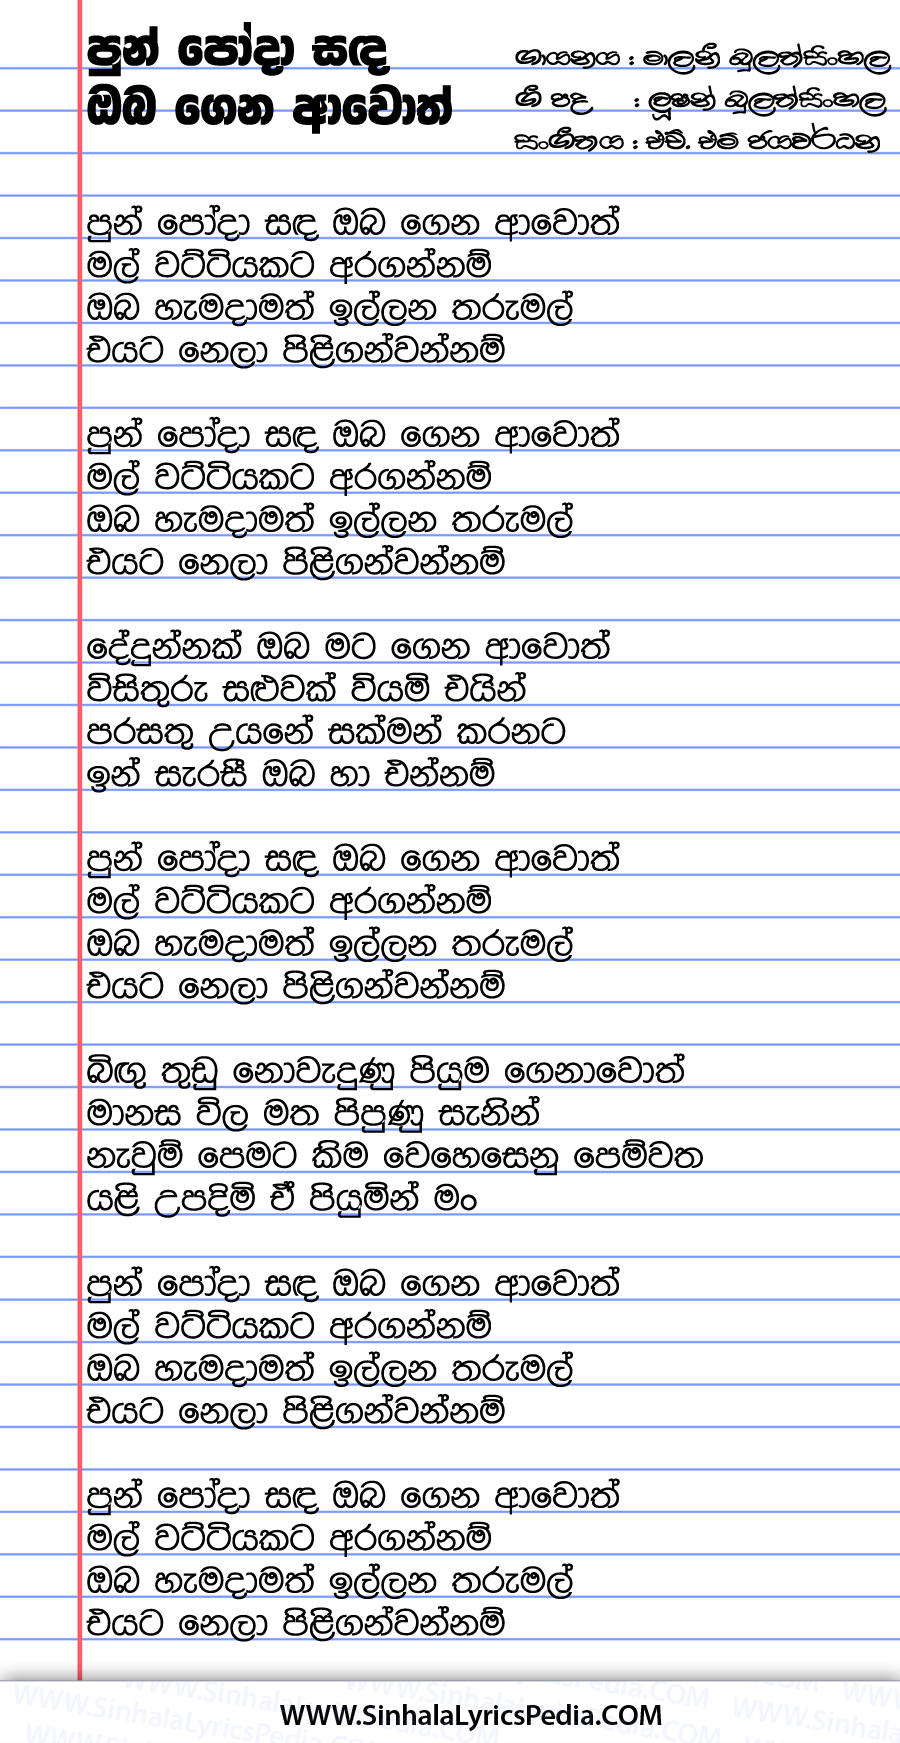 Pun Poda Sanda Oba Gena Awoth Song Lyrics